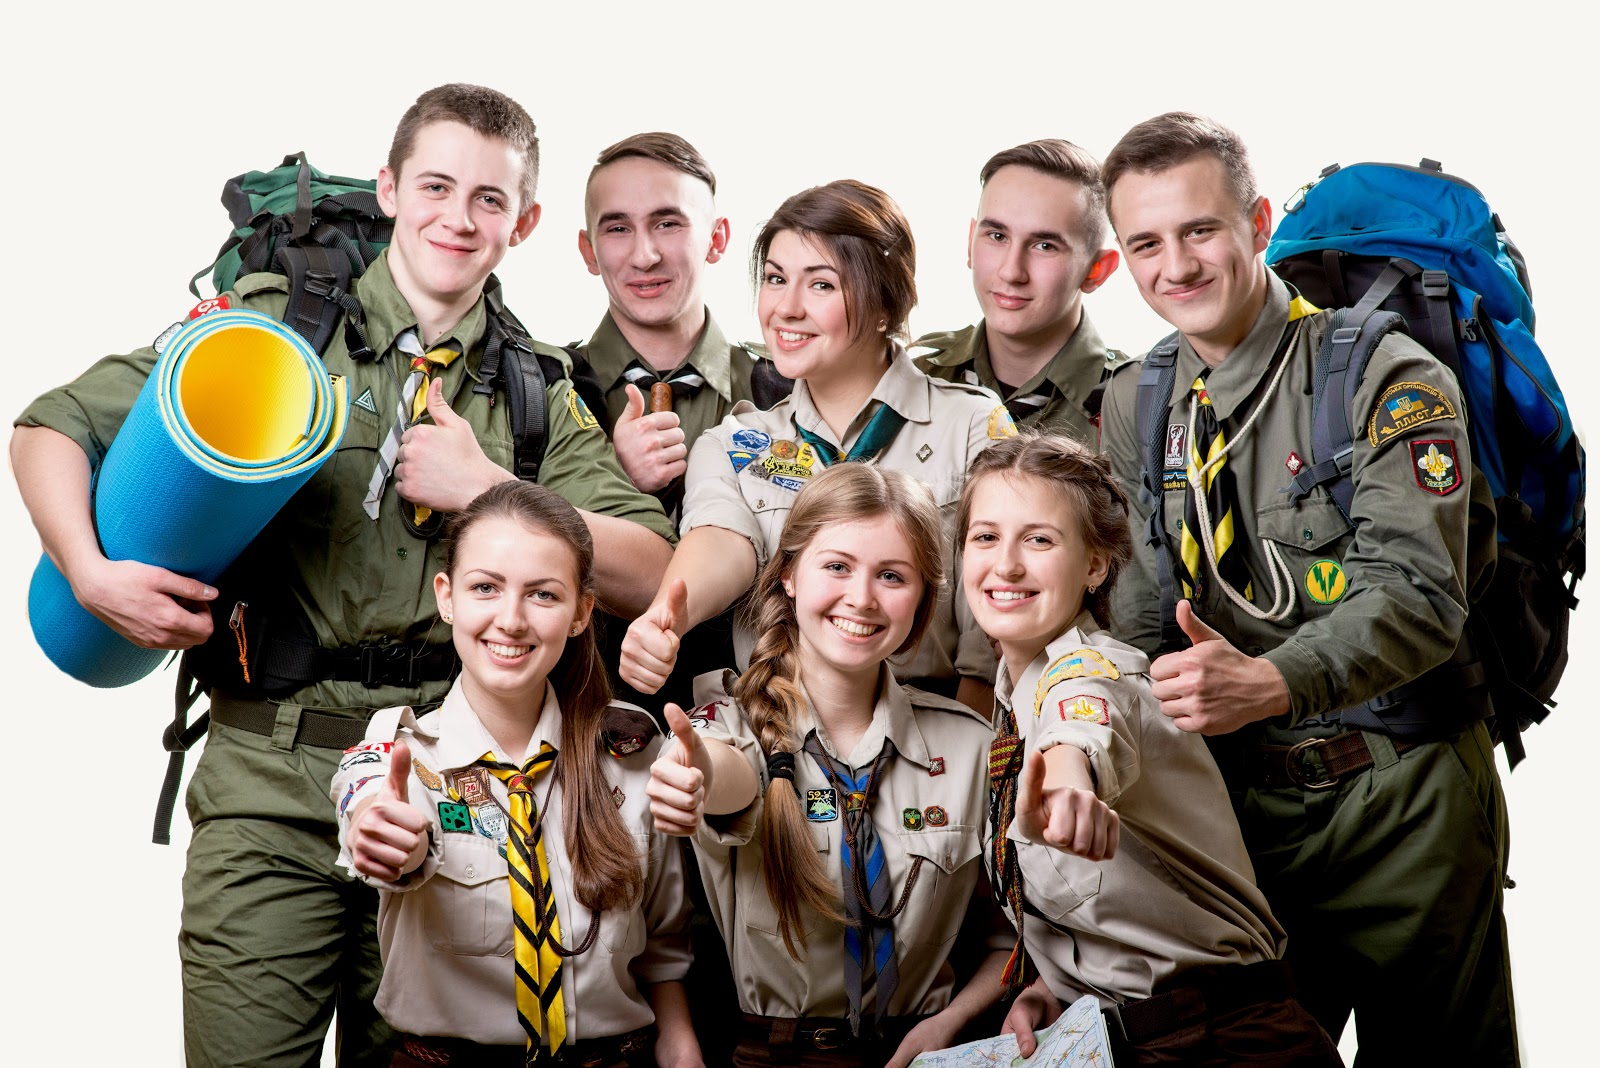 Eagle scout members: boys and girls